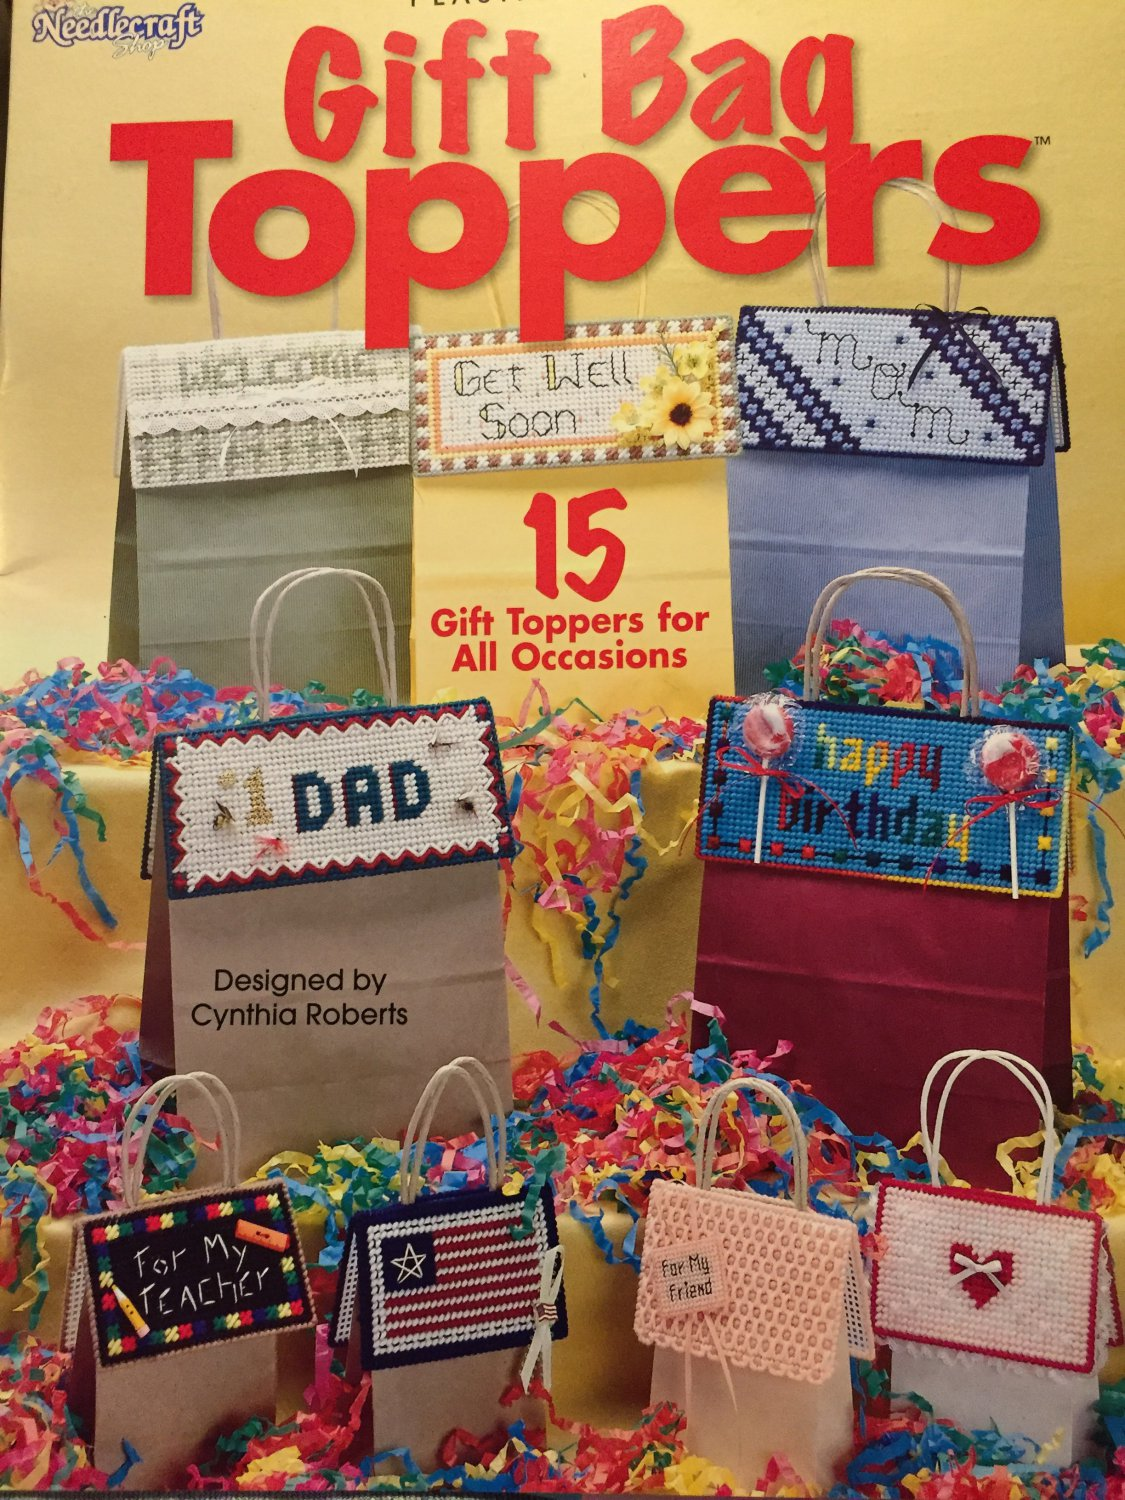 Gift Bag Toppers Plastic Canvas Leaflet/Book The Needlecraft Shop #844507